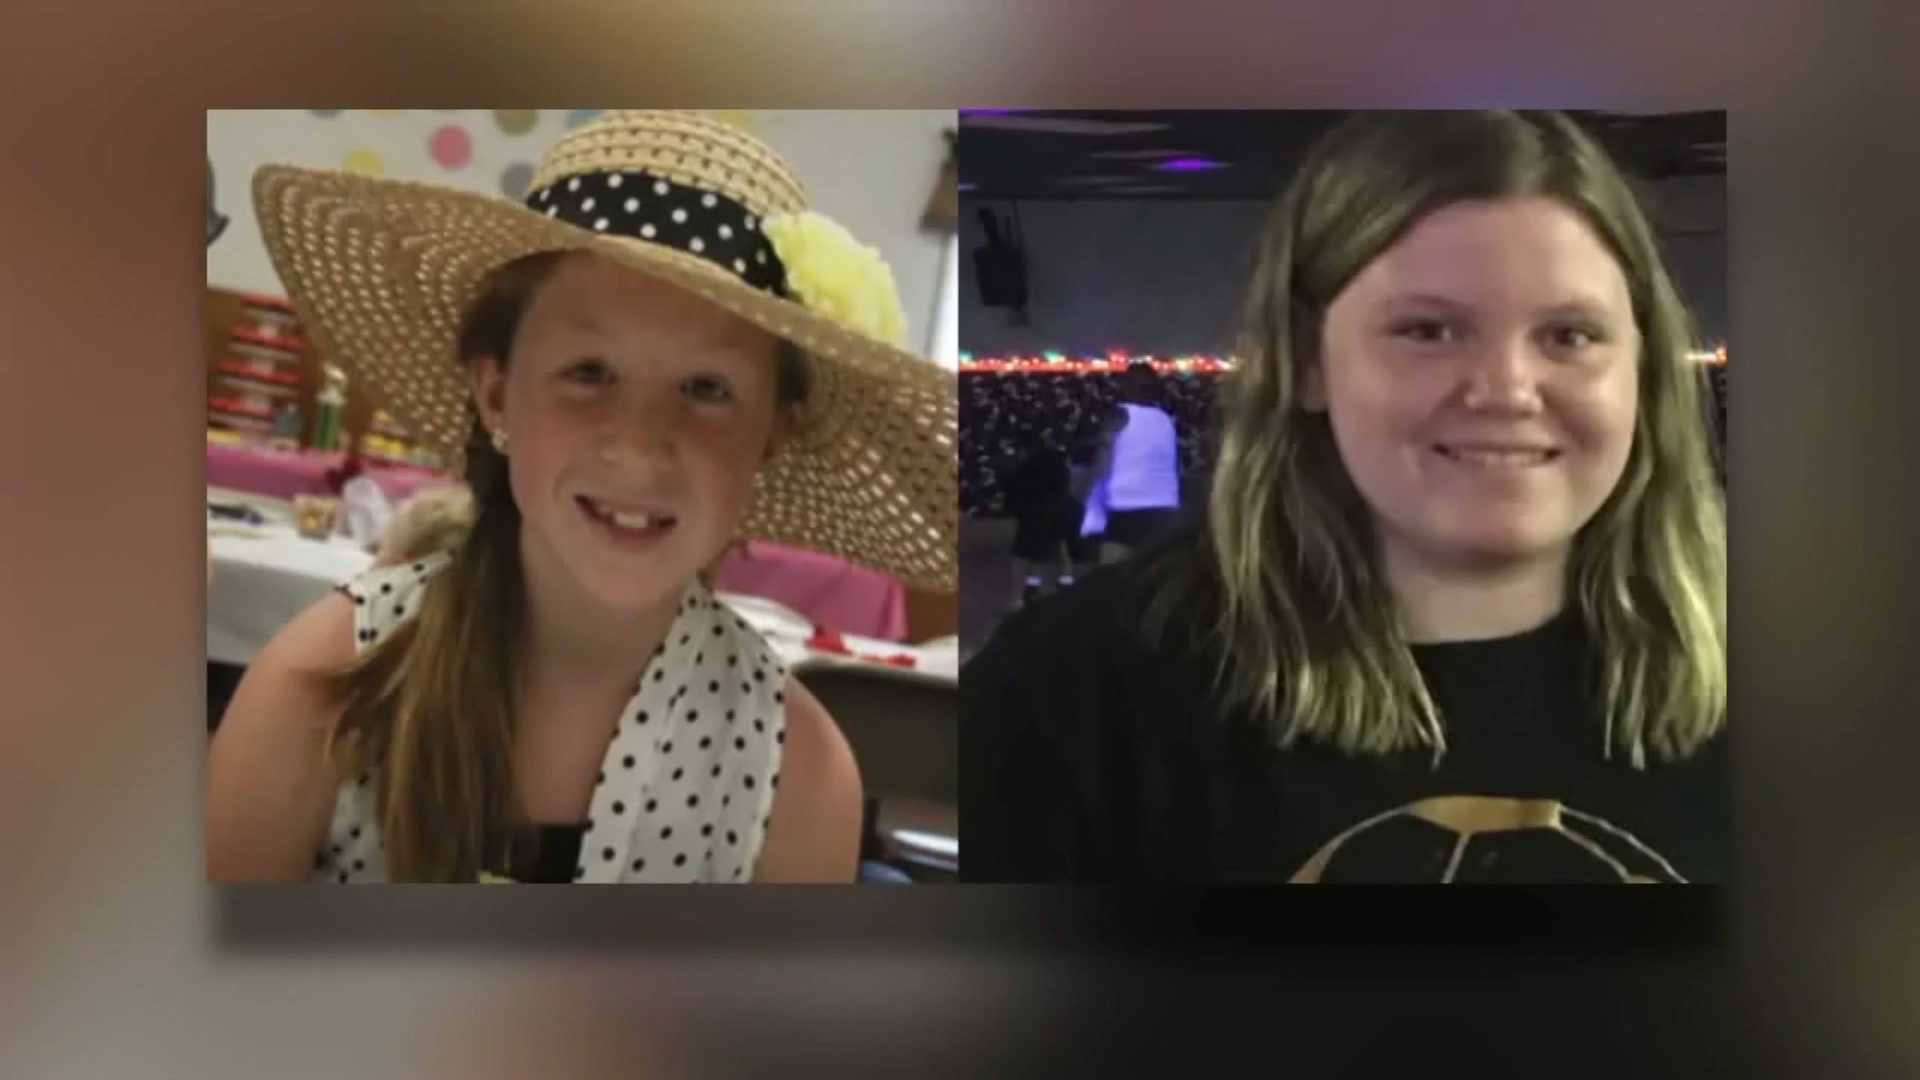 Bodies found in IN are those of missing teen girls, police say